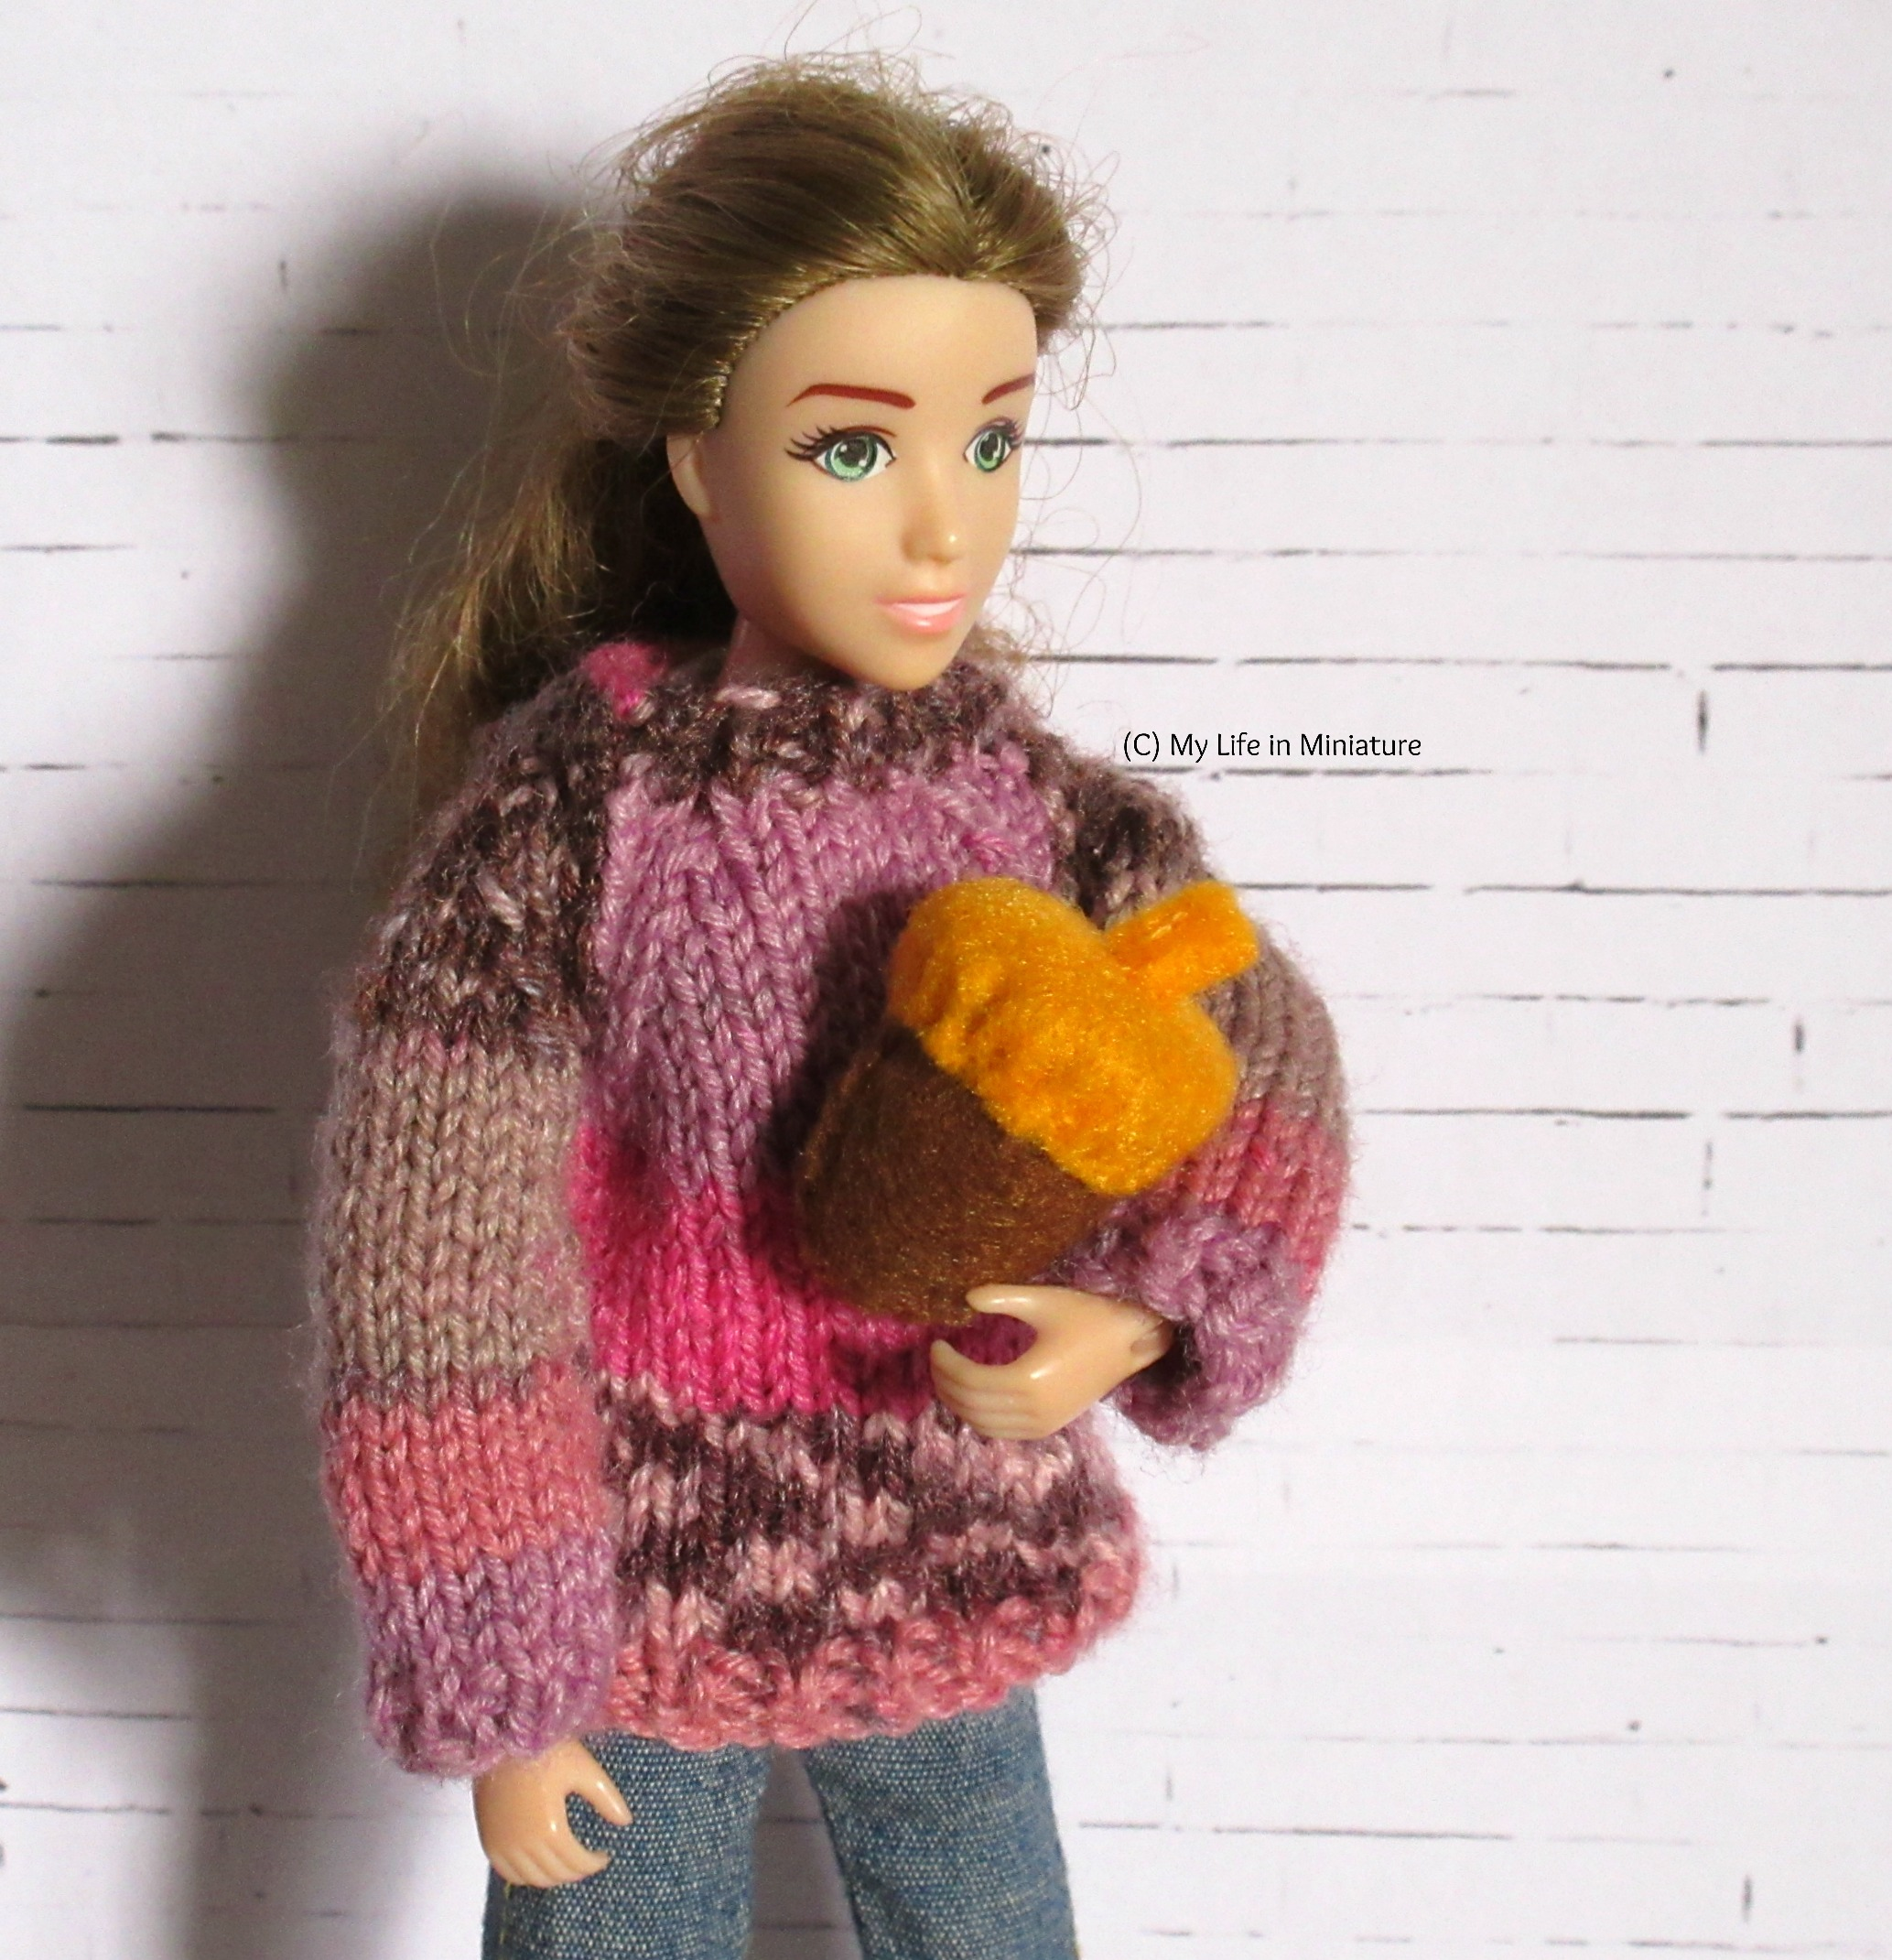 Sarah holds one of the smaller acorns in her arm. It's far too large to be a realistic size. She's in a pink jumper, and is looking at the acorn.